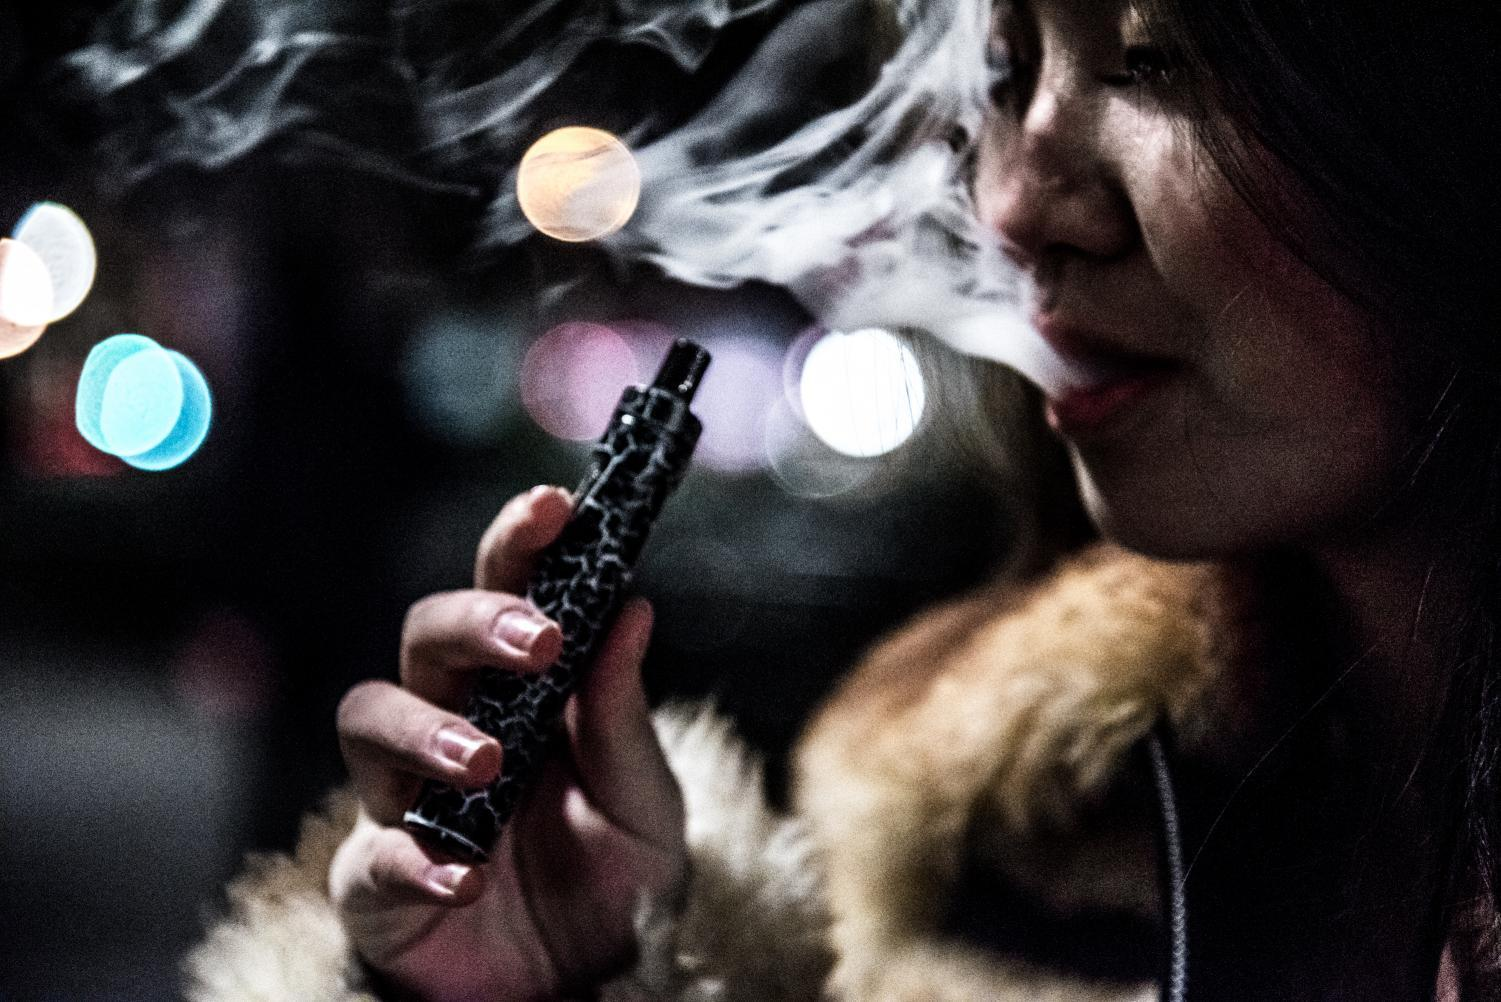 A first-year vapes in Union Square at night. She only started vaping since being at NYU, primarily doing so on nights out.